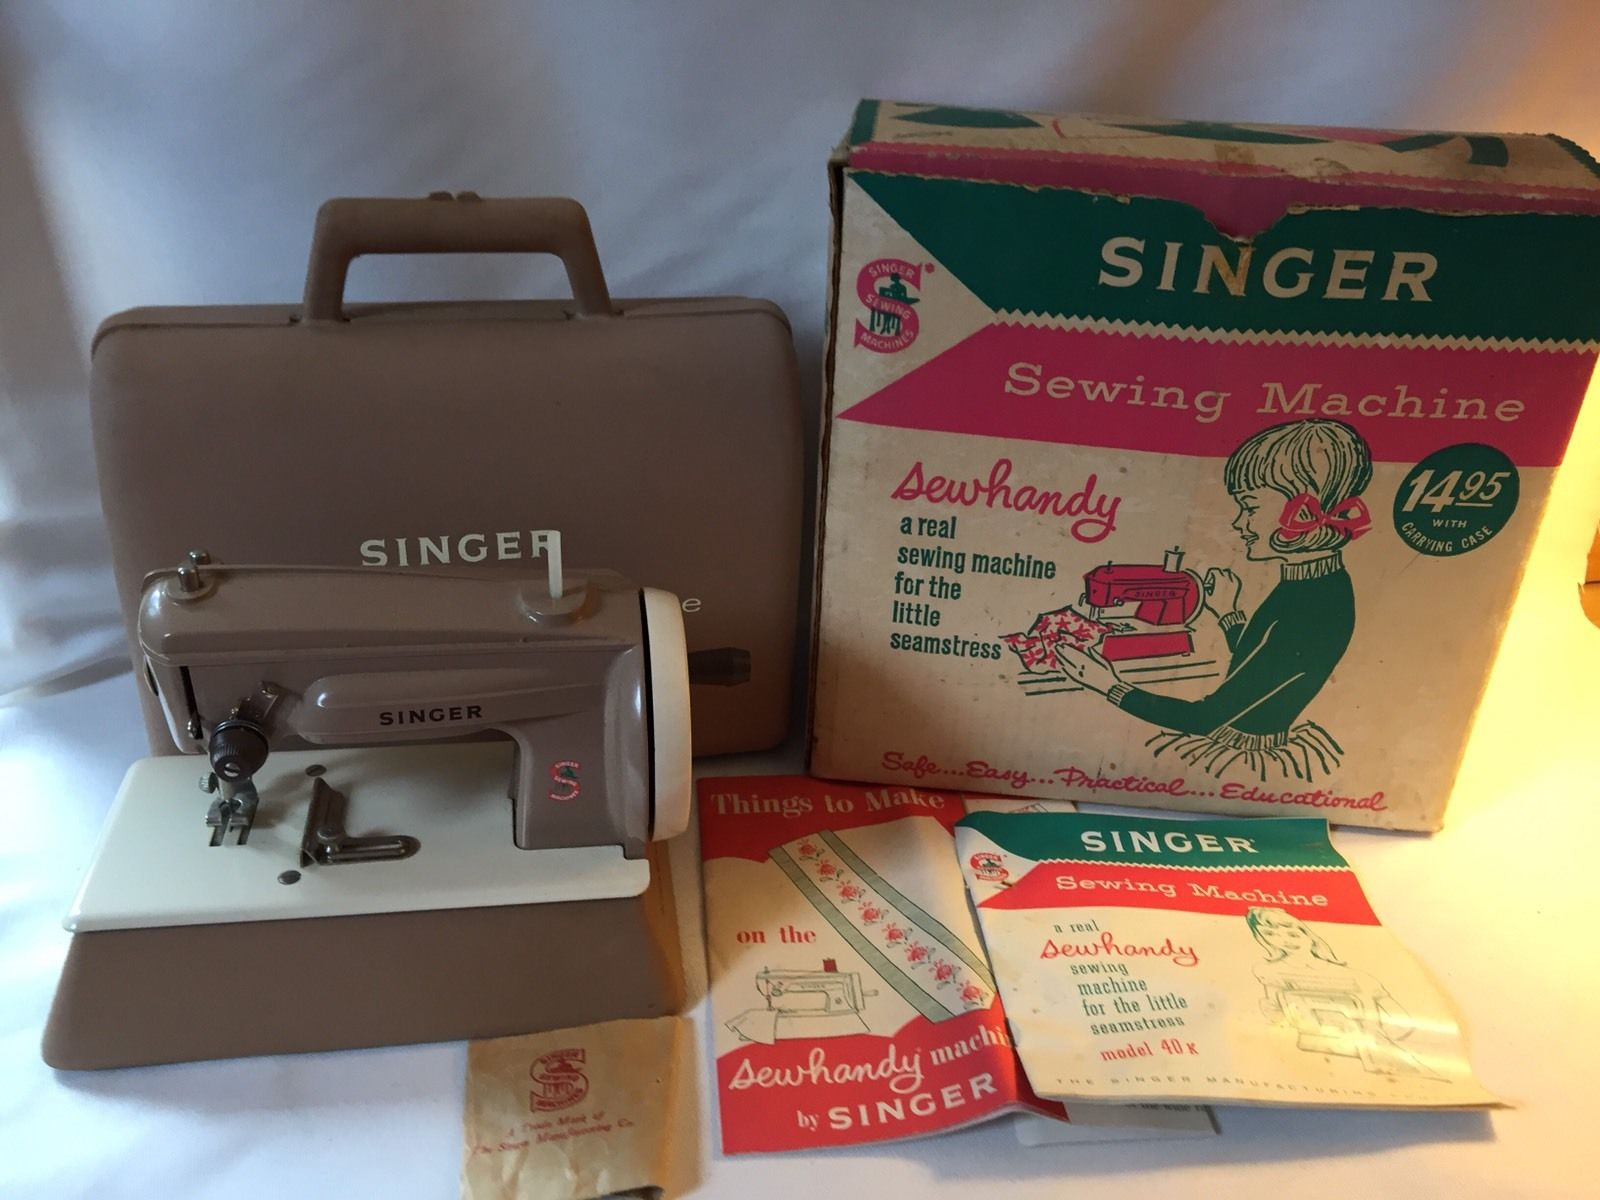 white sewing machines manuals on singer site